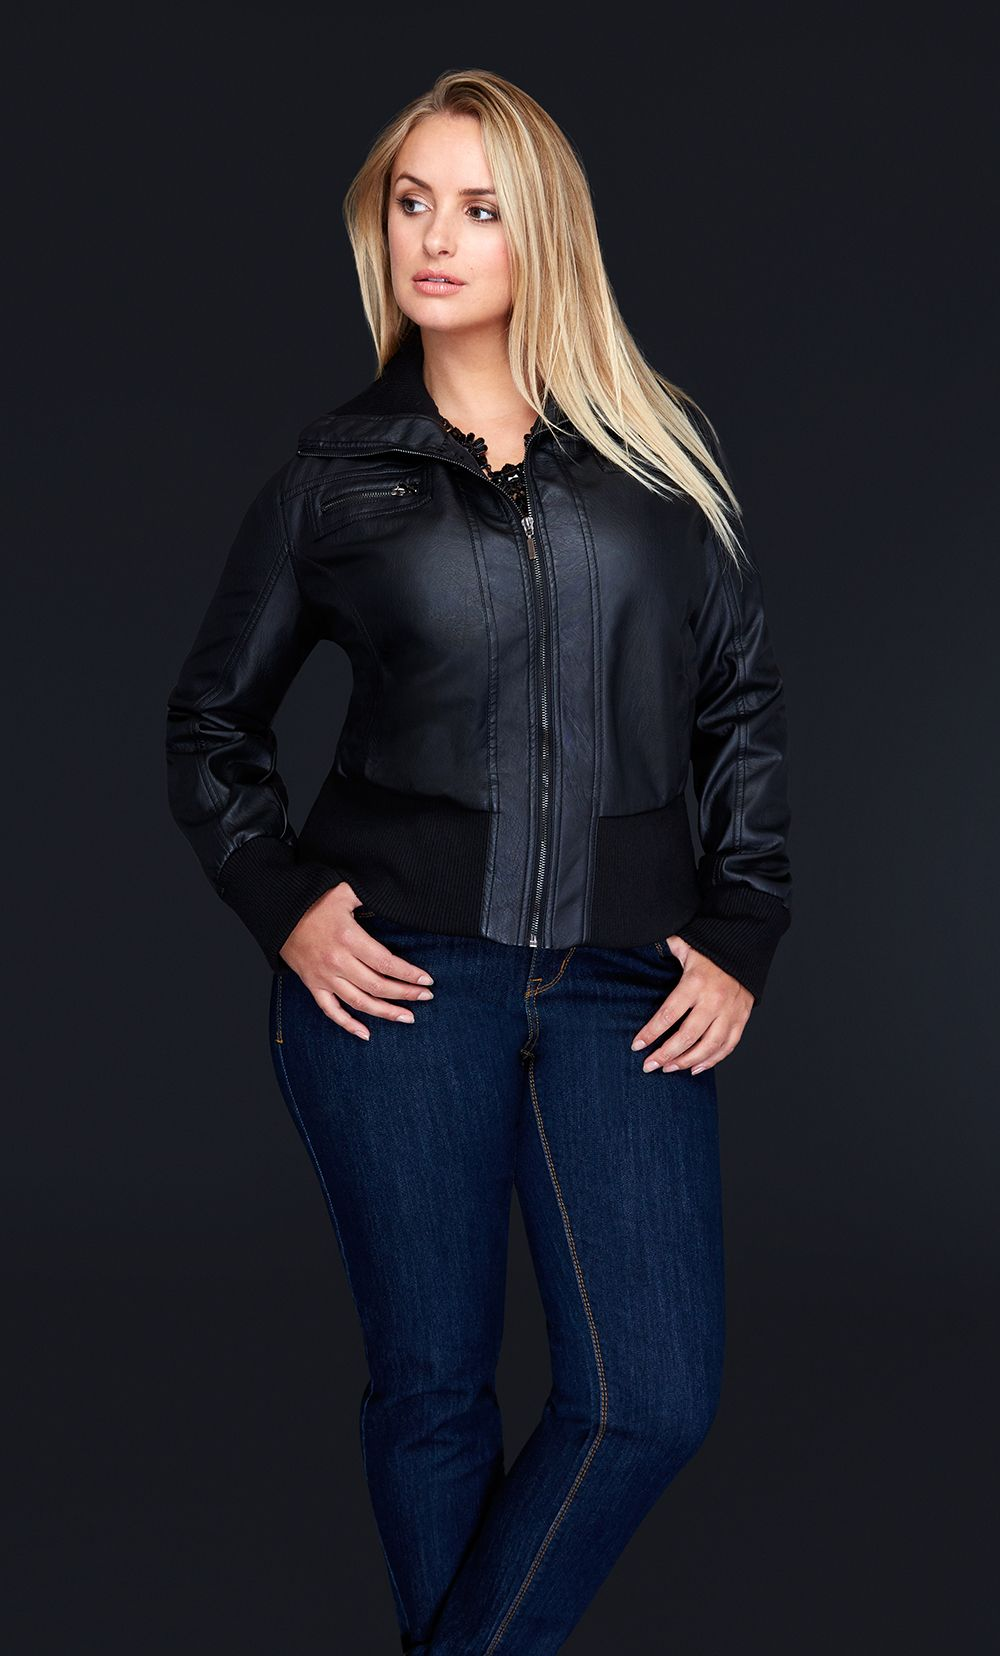 FauxLeather BomberJacket Faux leather bomber